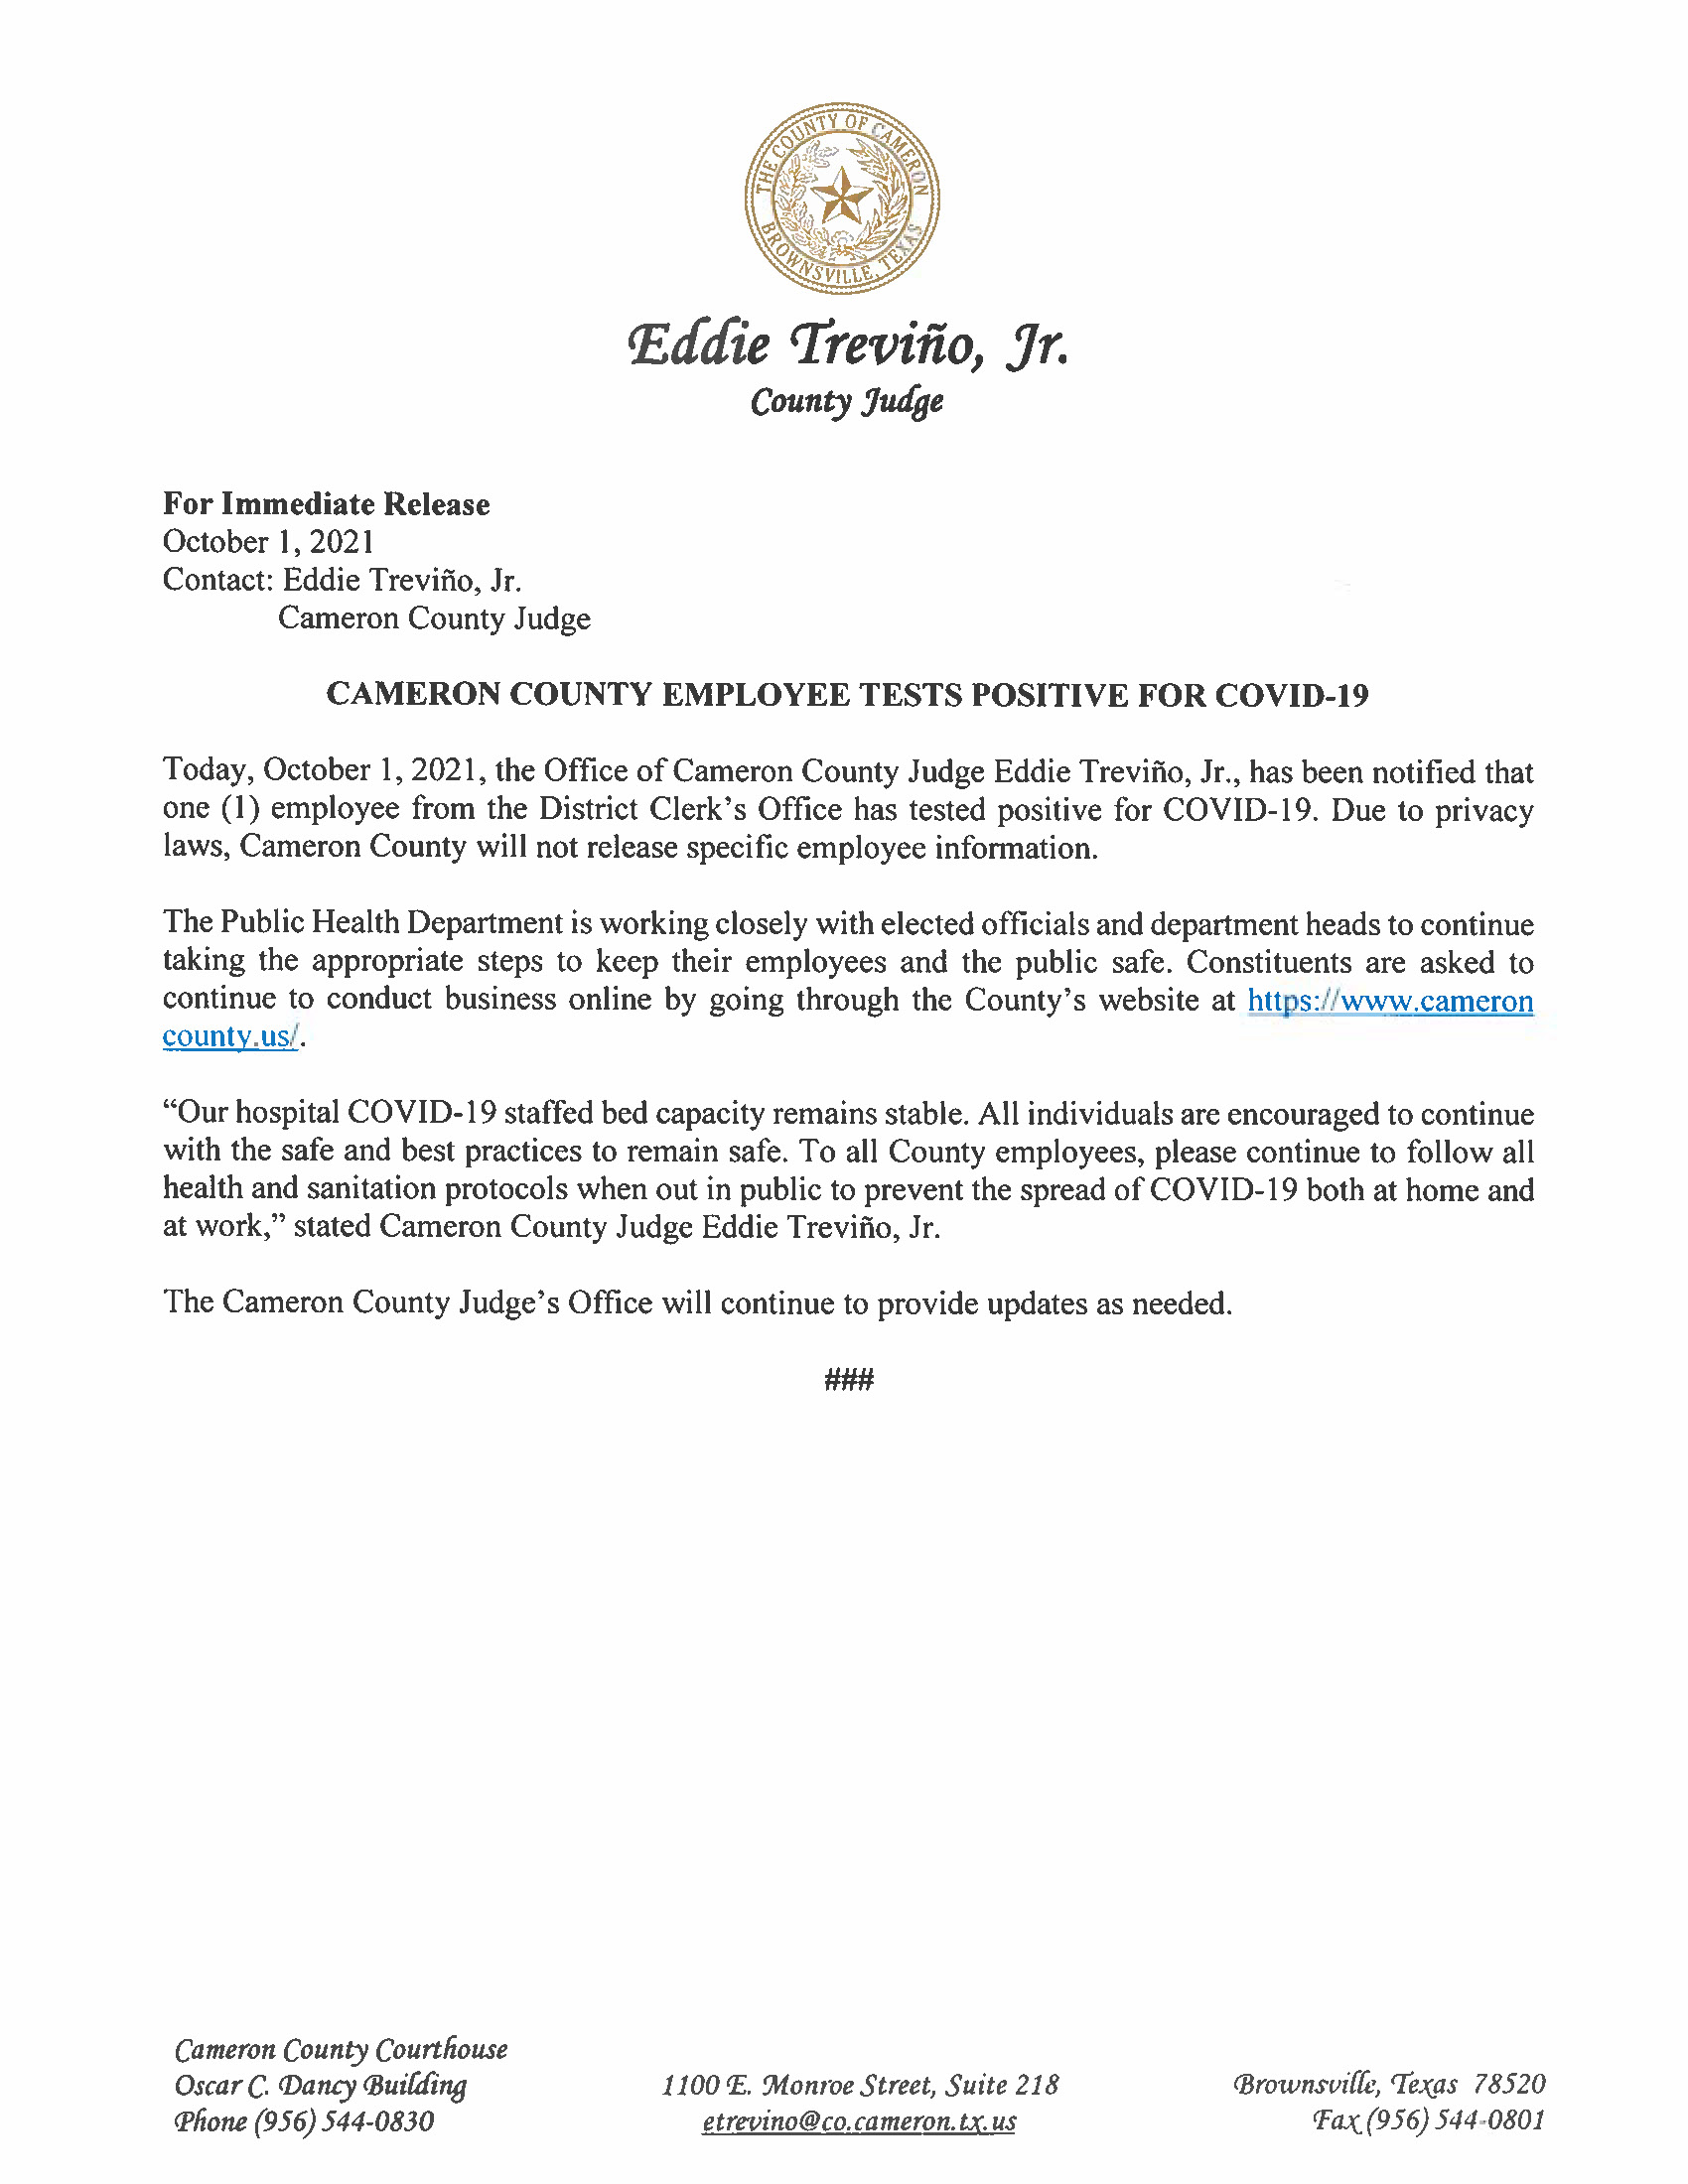 10.01.21 Cameron County Employee Tests Positive For COVID 19